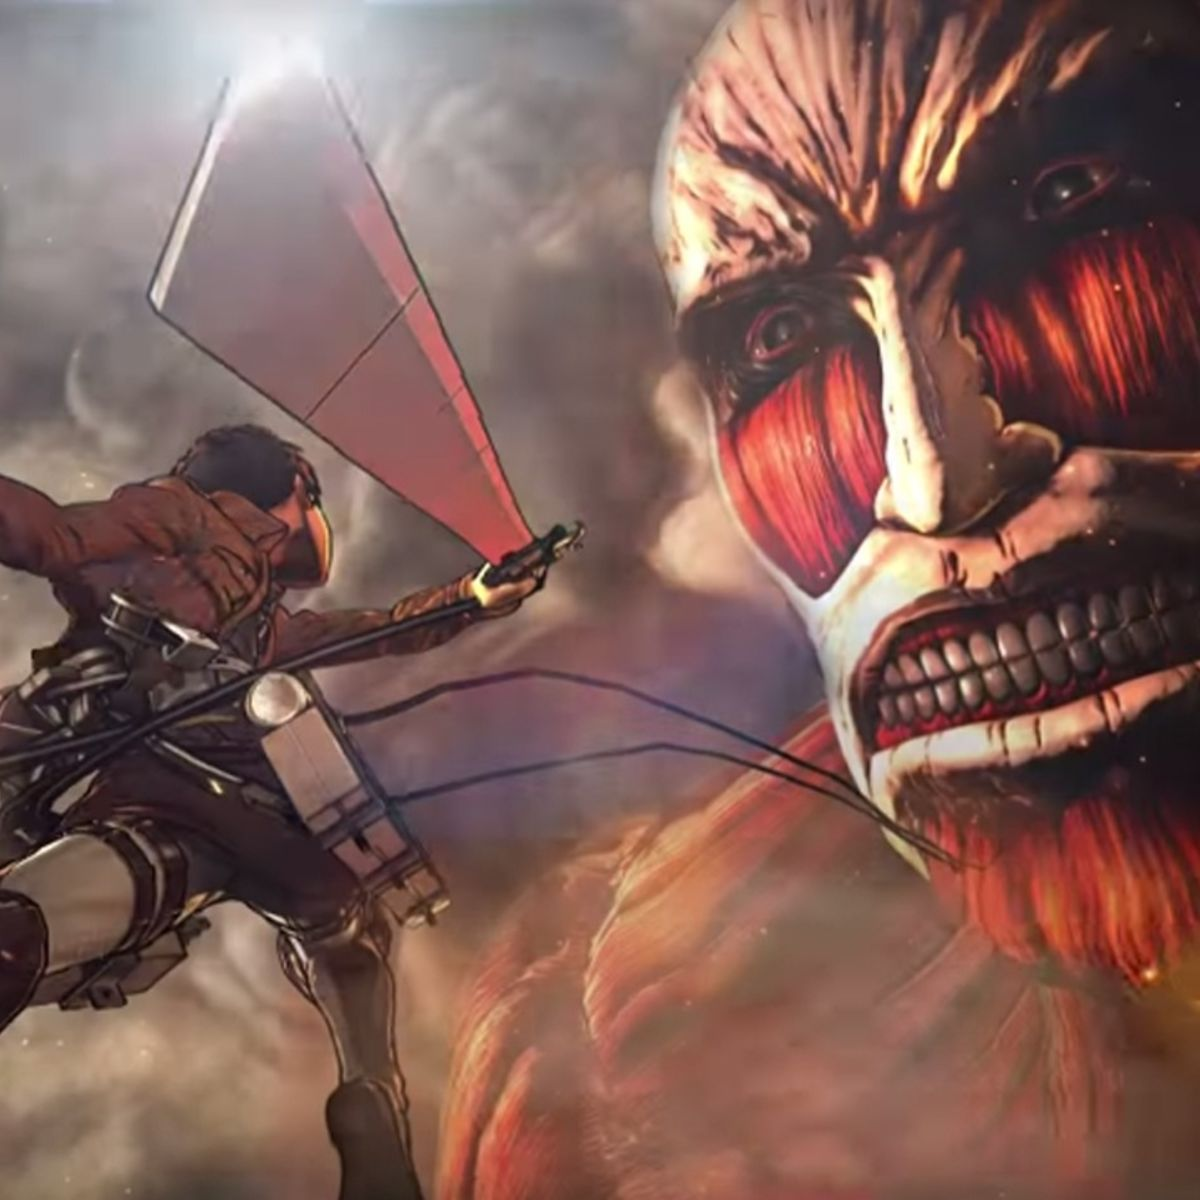 IT Director Andy Muschietti to Adapt Manga Series Attack on Titan